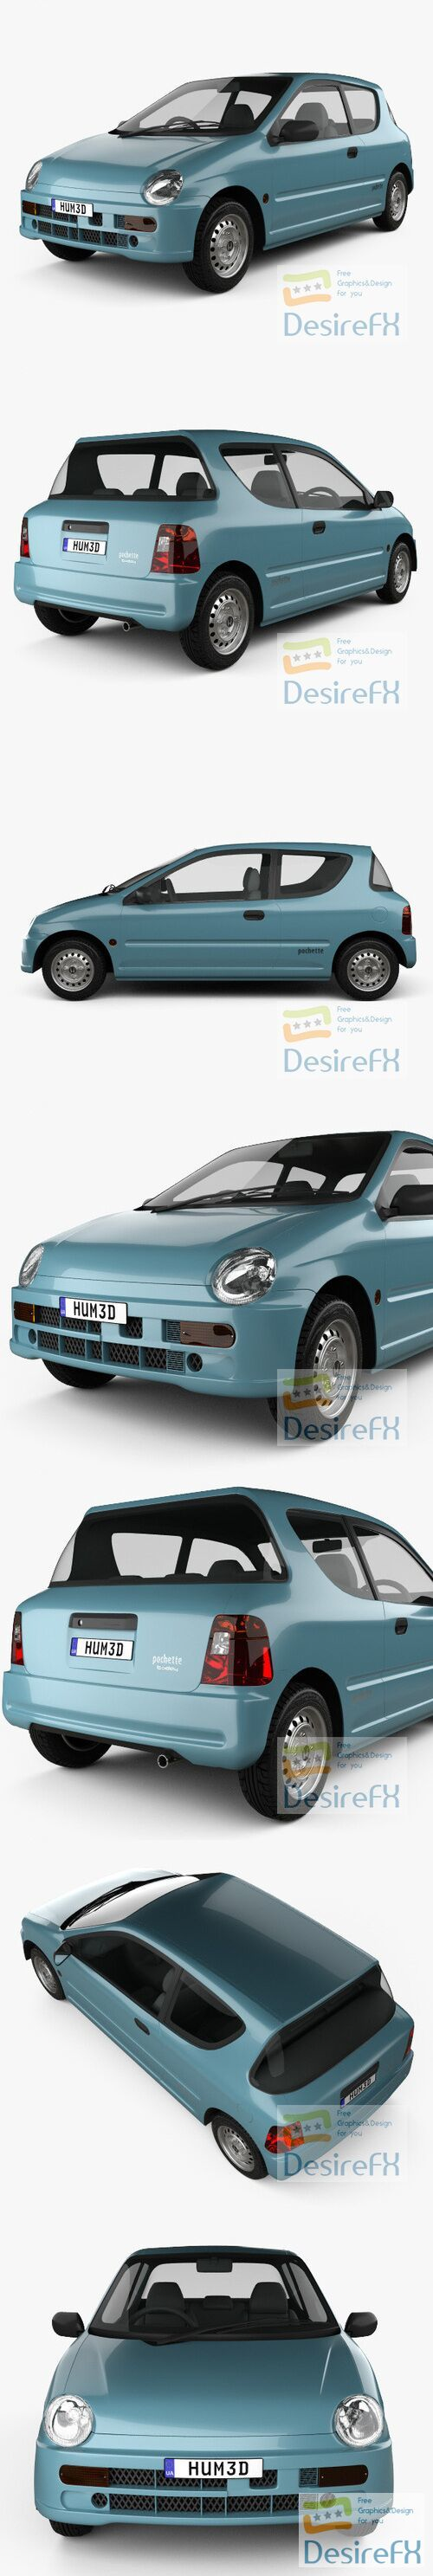 Honda Today 1996 3D Model